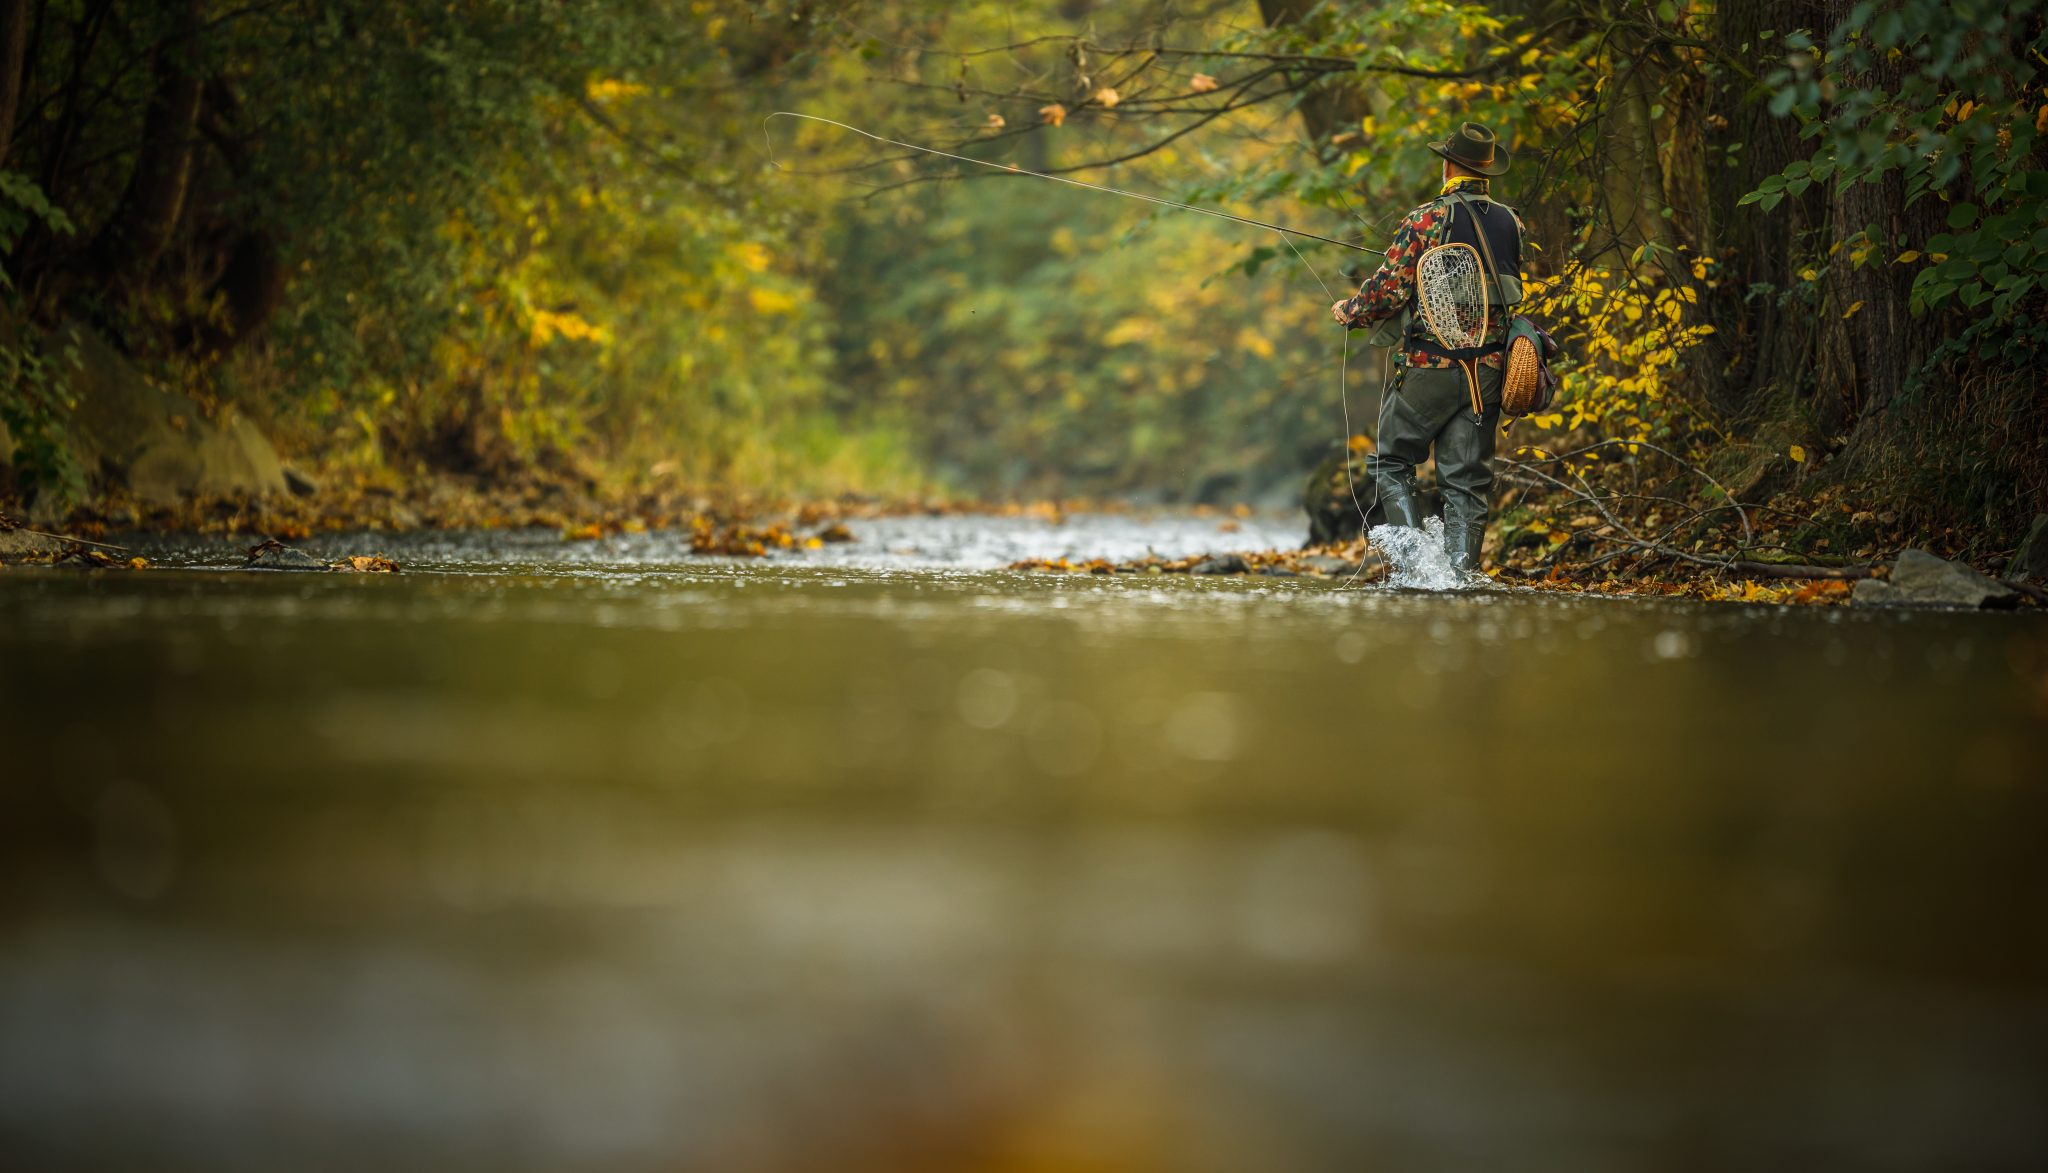 fly fishing in the outdoors lightpoet (c) 123rf